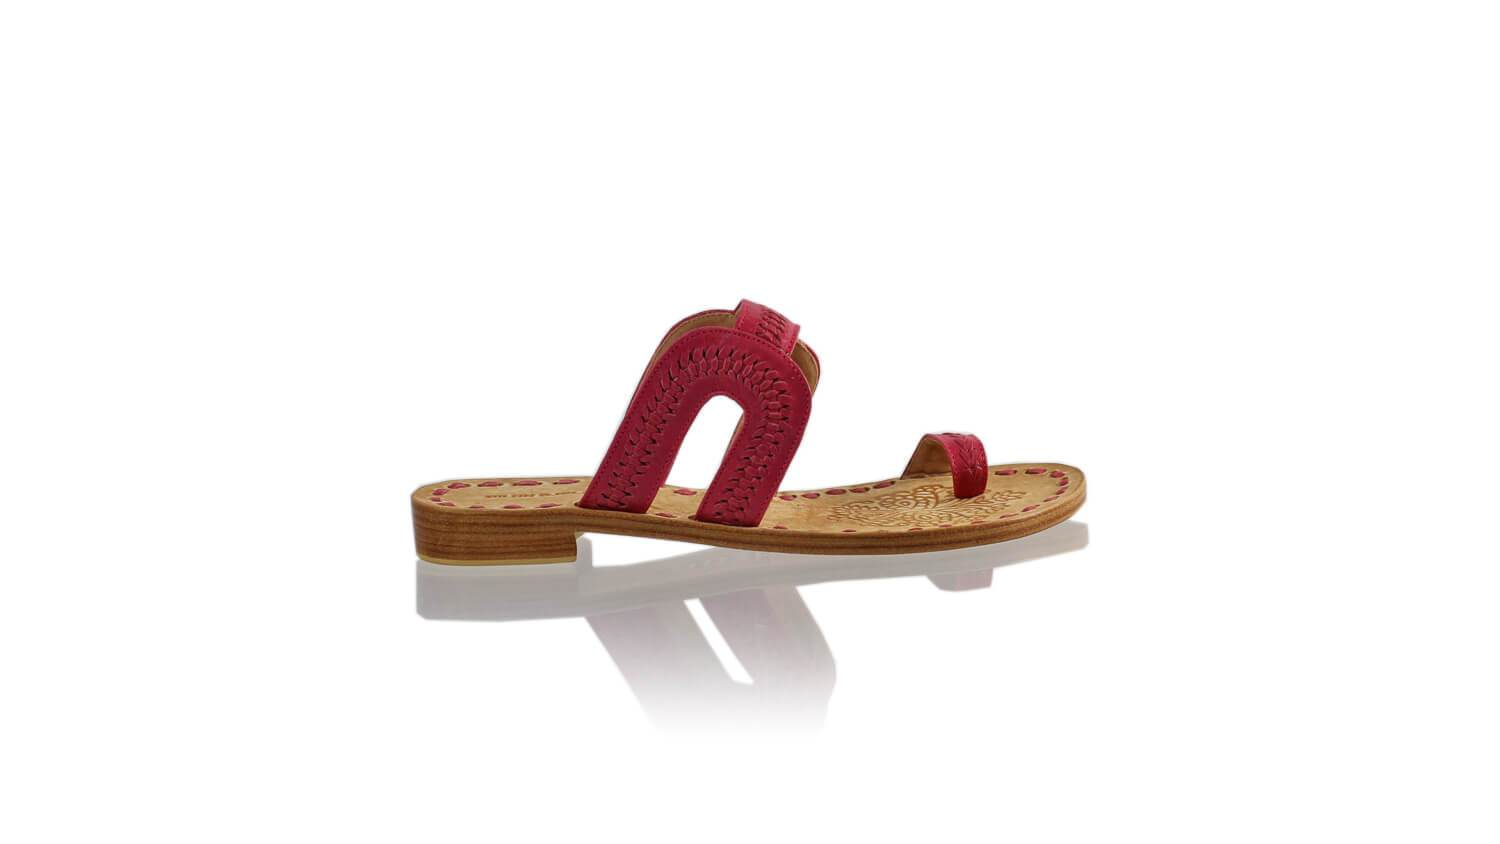 Leather-shoes-Andy 20mm Flat - Fuschia-sandals flat-NILUH DJELANTIK-NILUH DJELANTIK